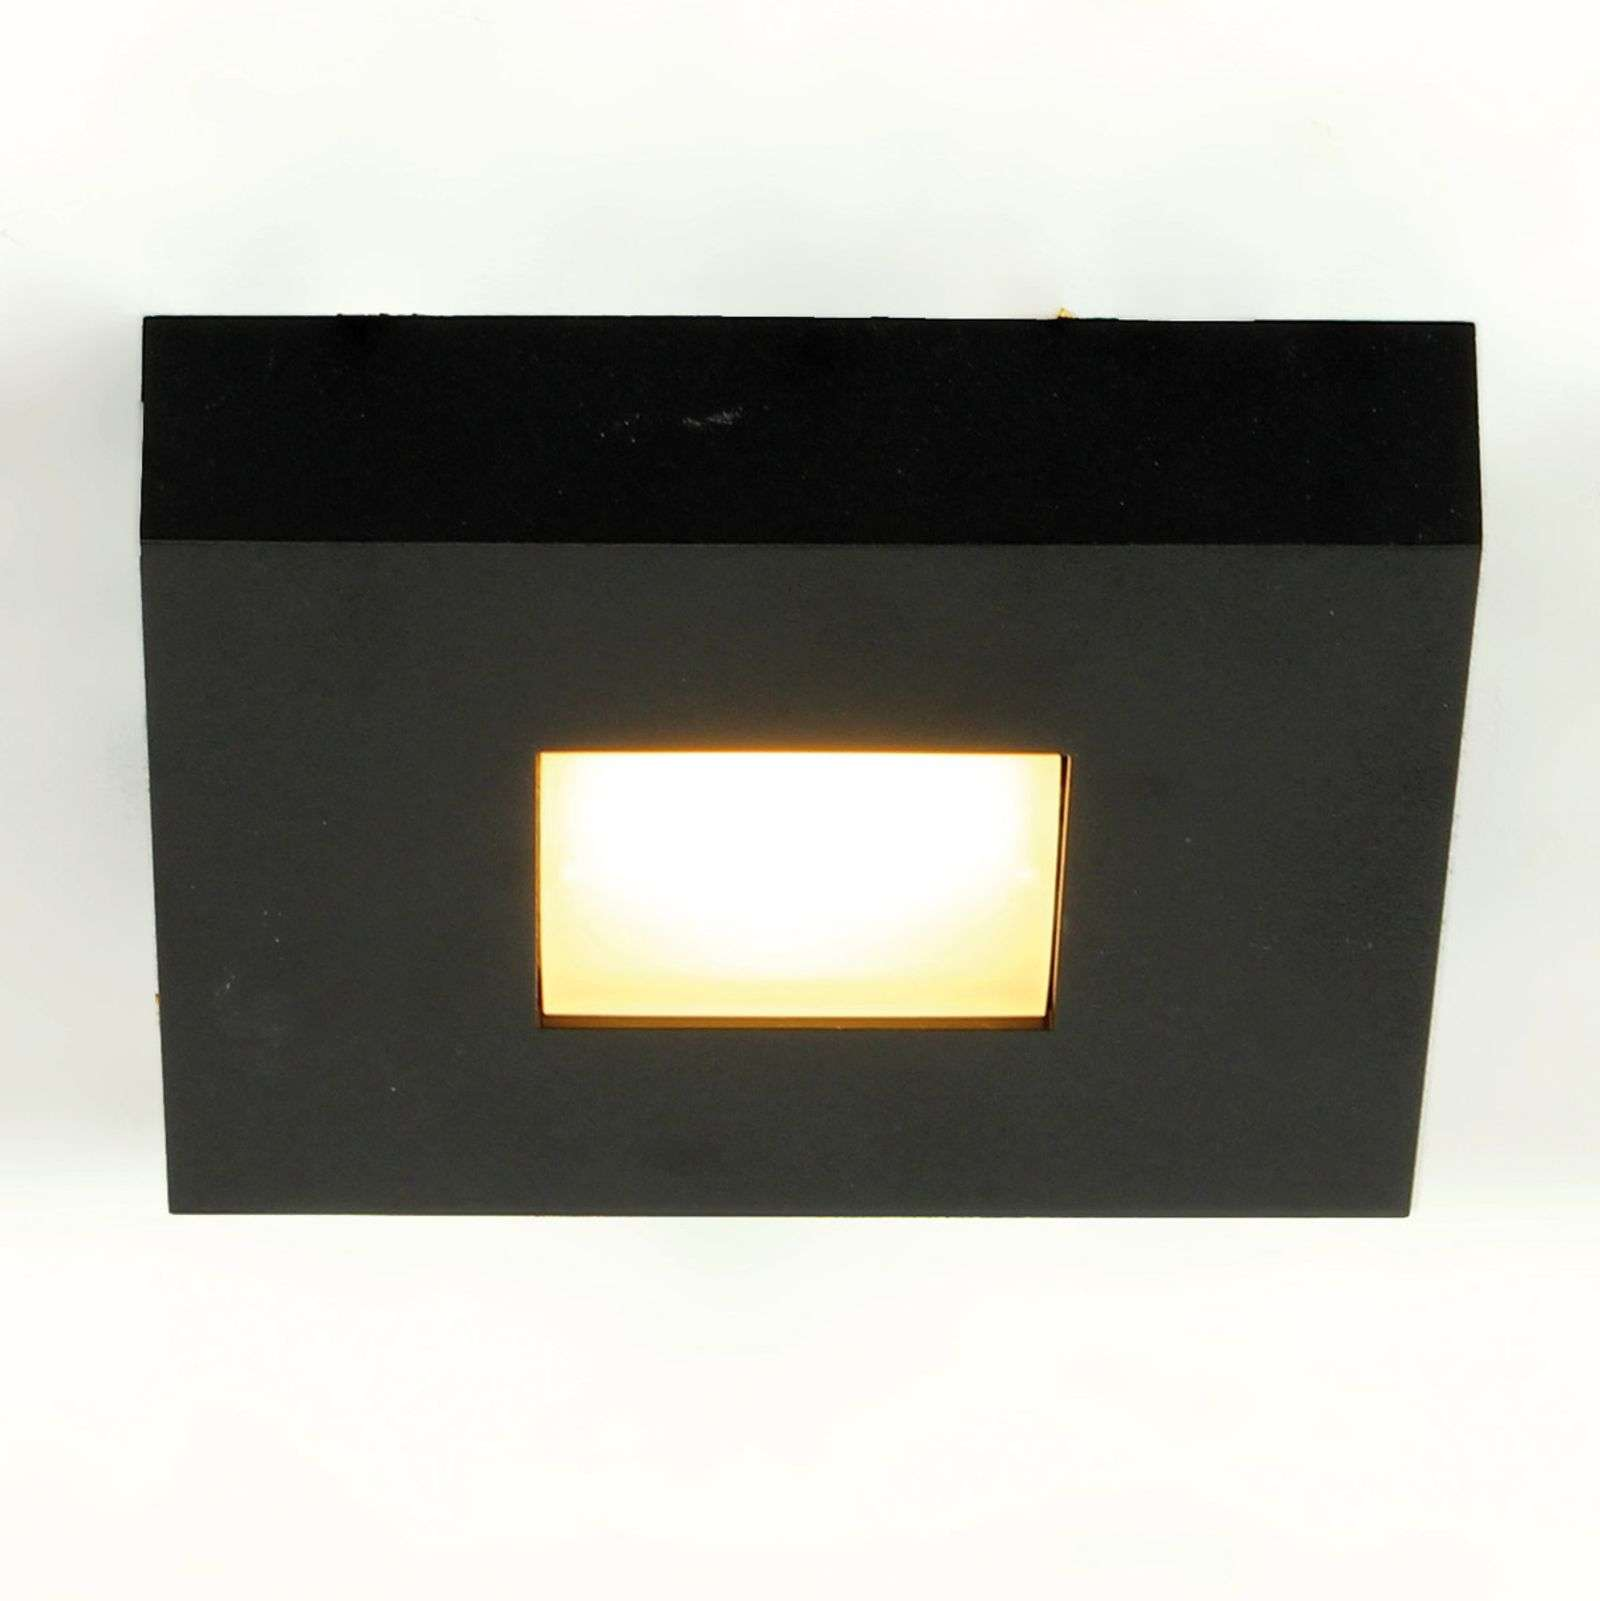 LED-plafondlamp Cubus in zwart